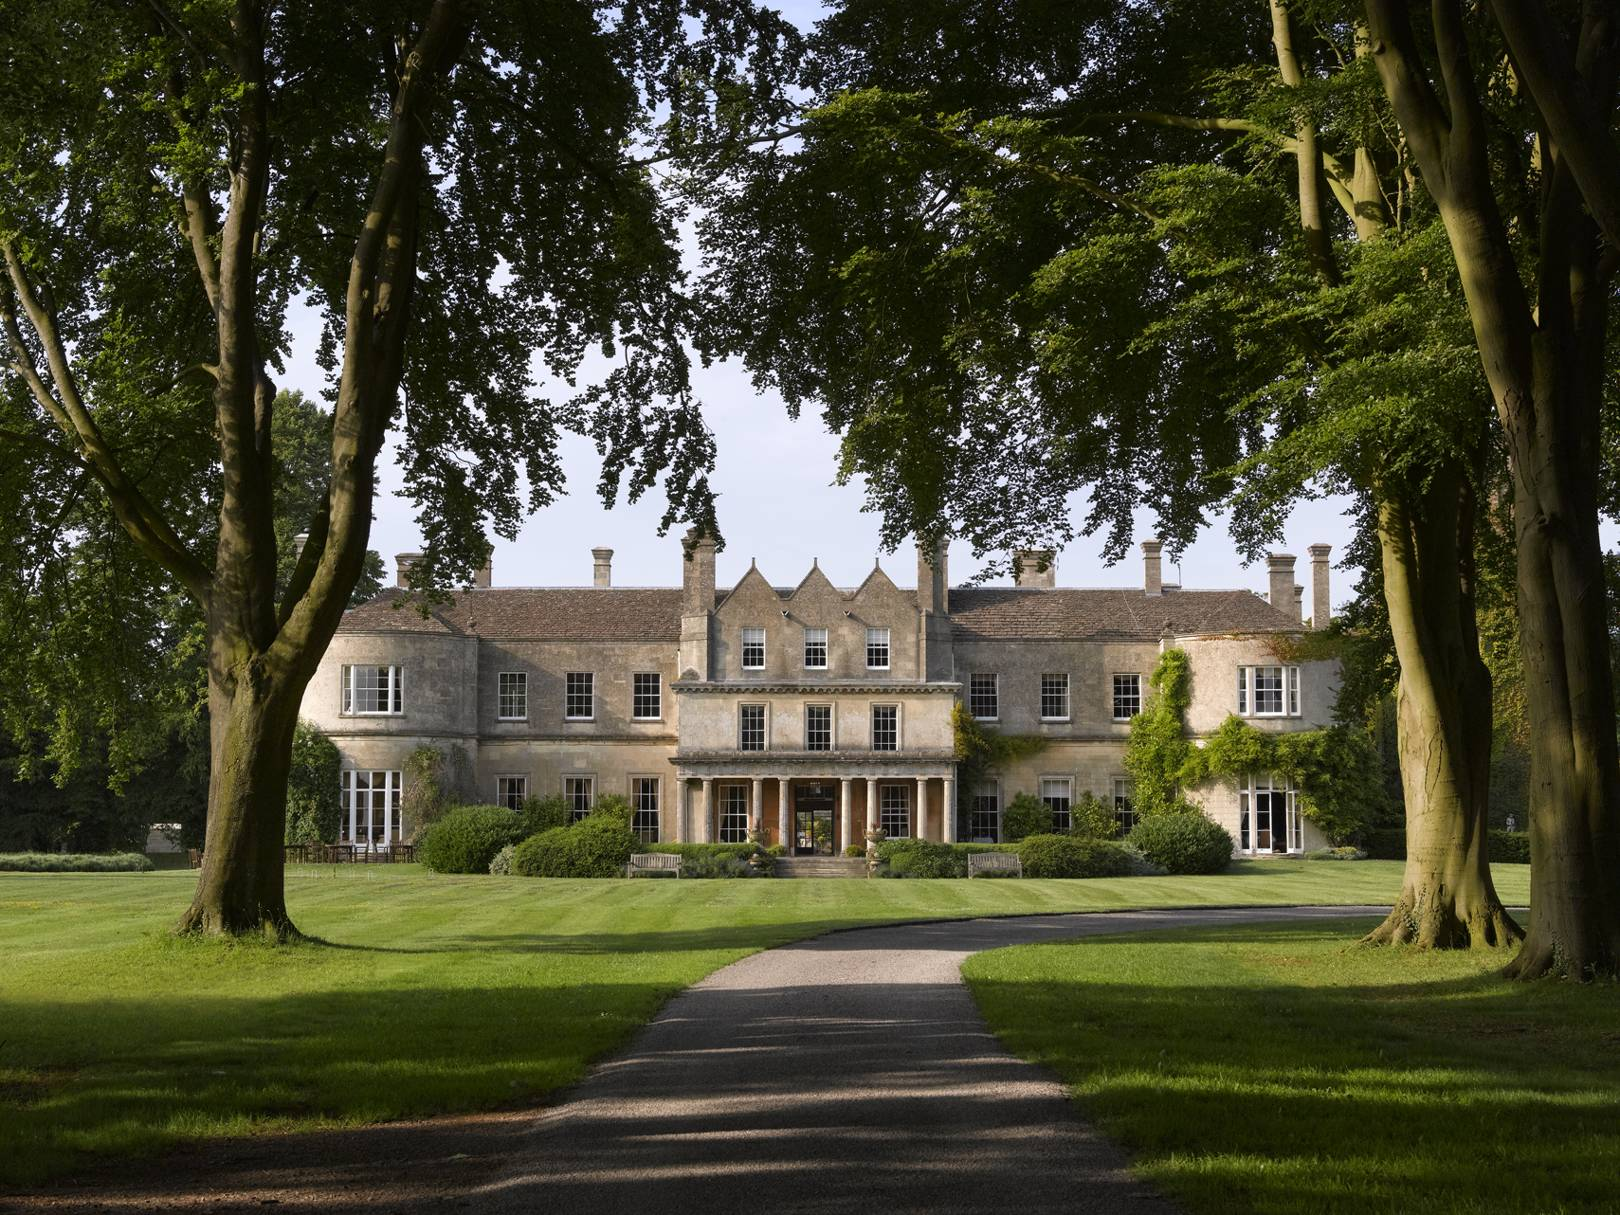 Win an exclusive trip to Lucknam Park in a Jaguar provided by Avis